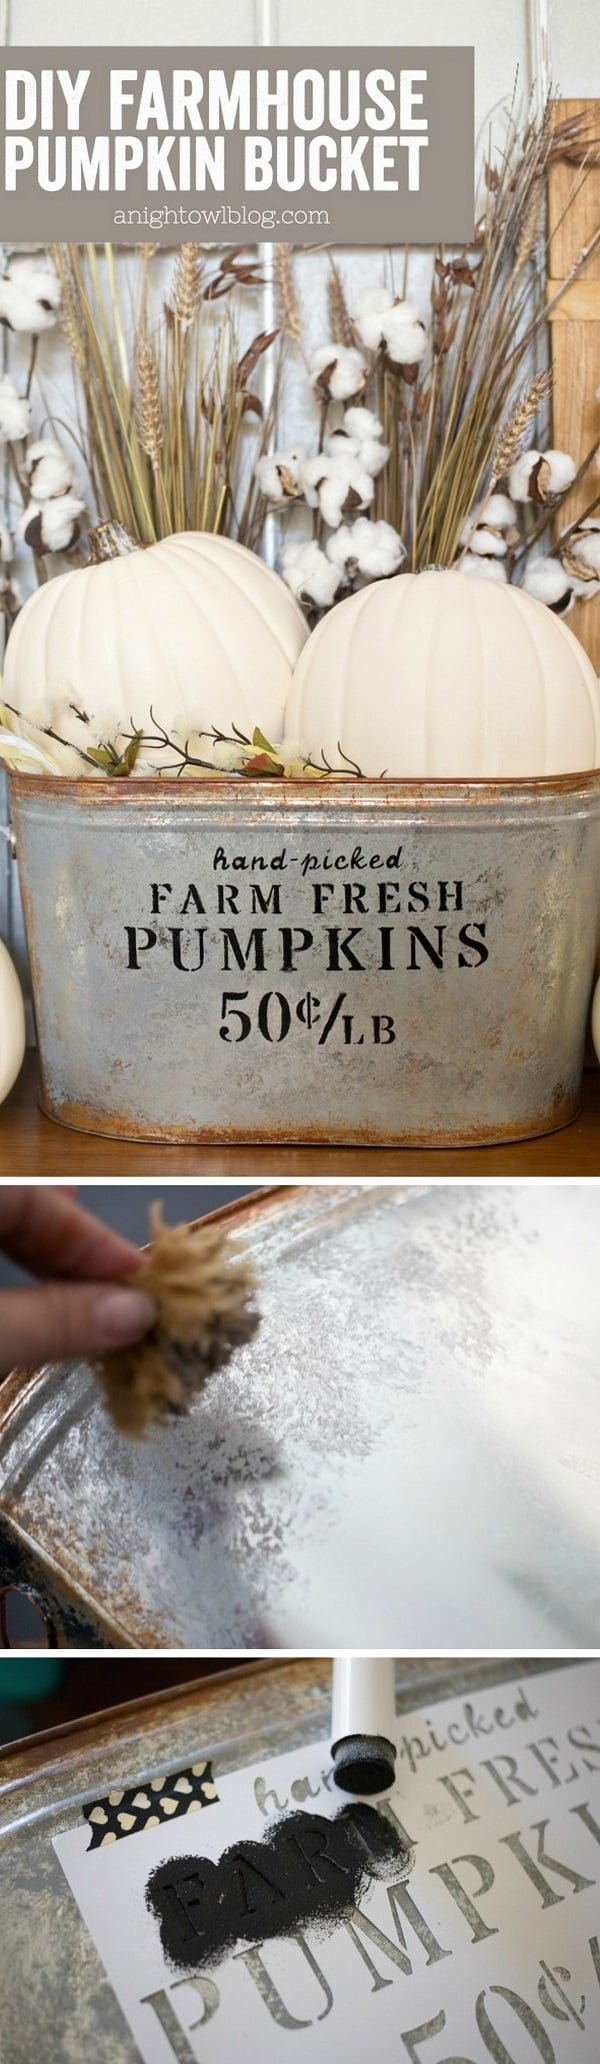 Check out the tutorial on how to make a DIY farmhouse pumpkin bucket for fall decor